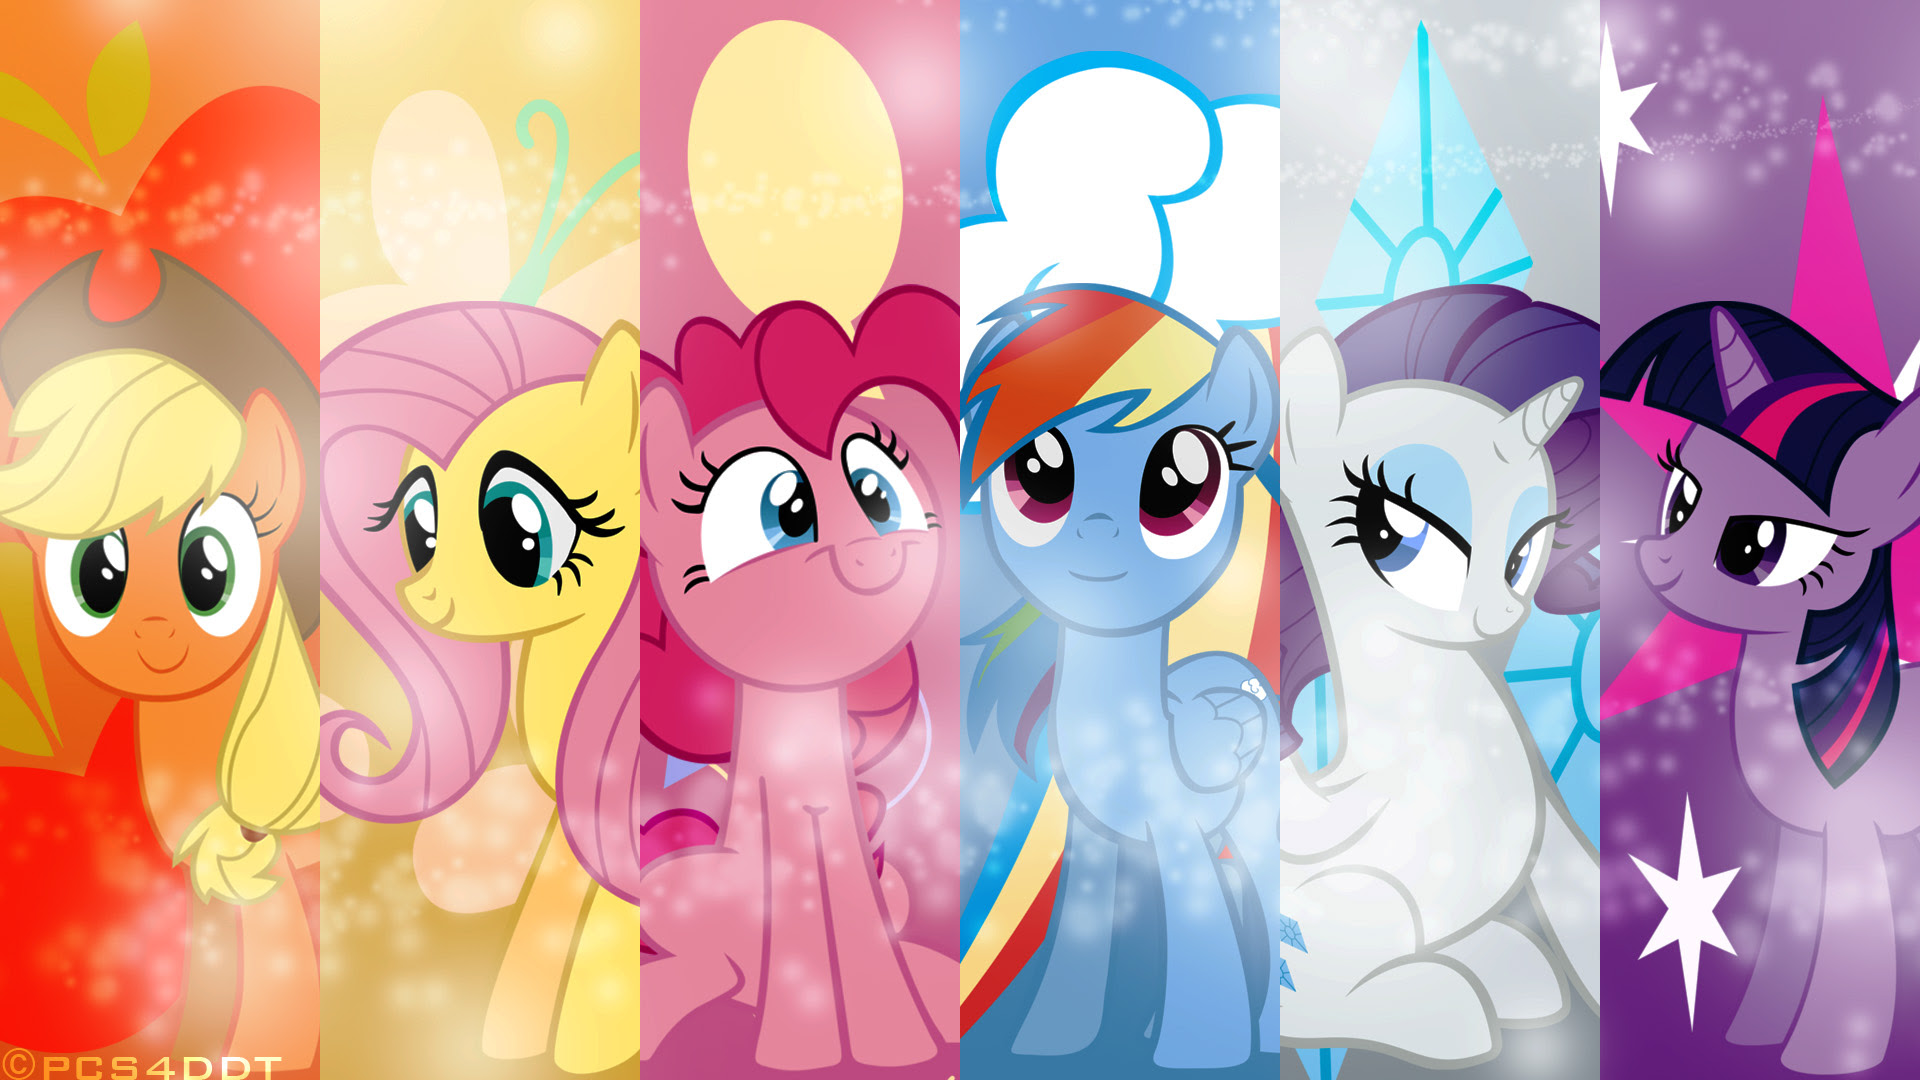 Cute My Little Pony Wallpaper 1920x1080 18183